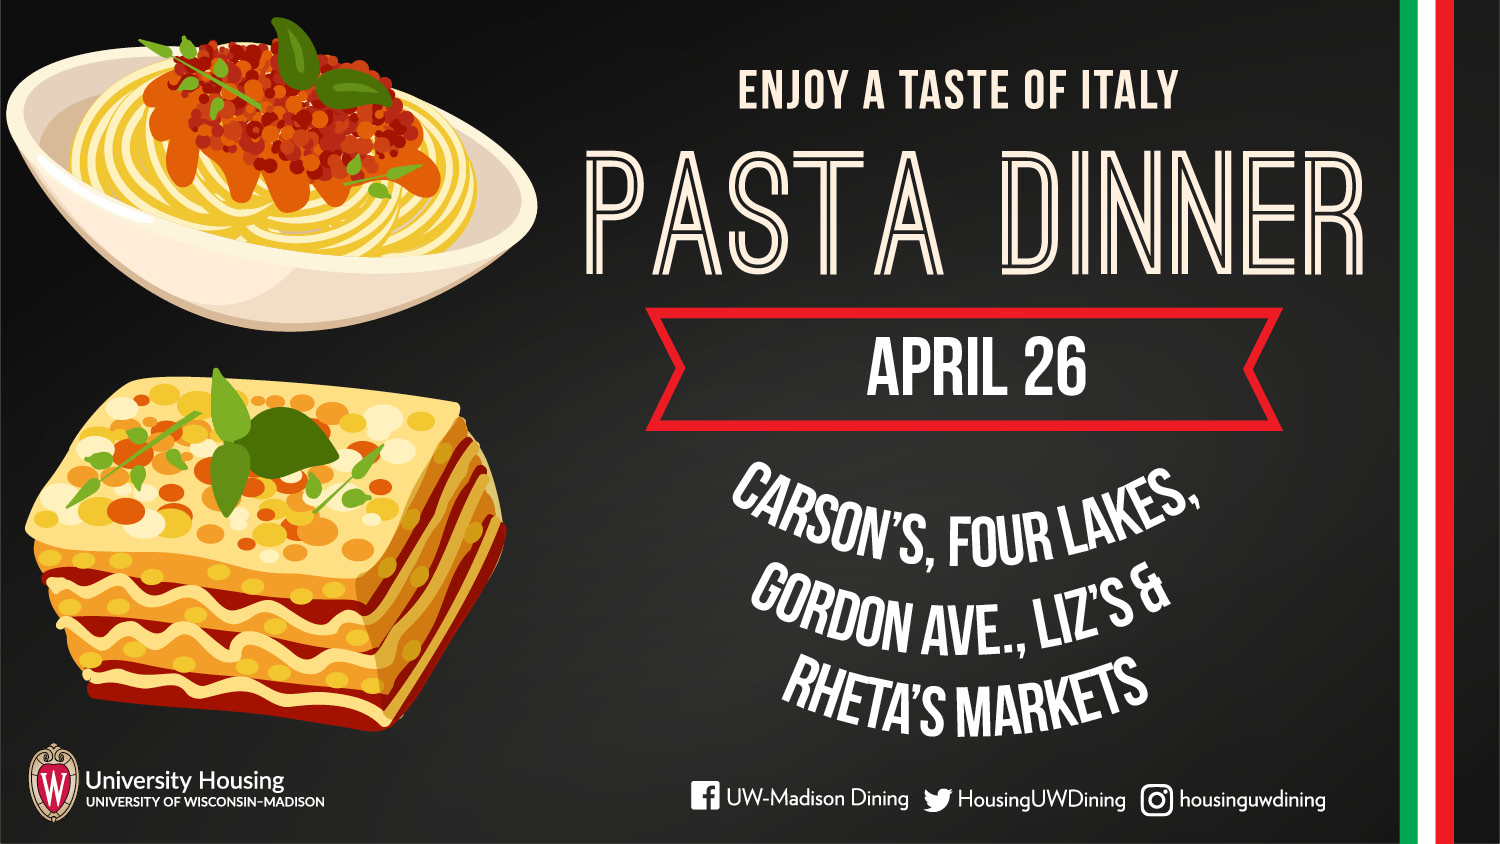 Pasta Dinner, April 26 5-7:30 pm at Carson's, Four Lakes, Gordon Ave., Liz's, & Rheta's Markets